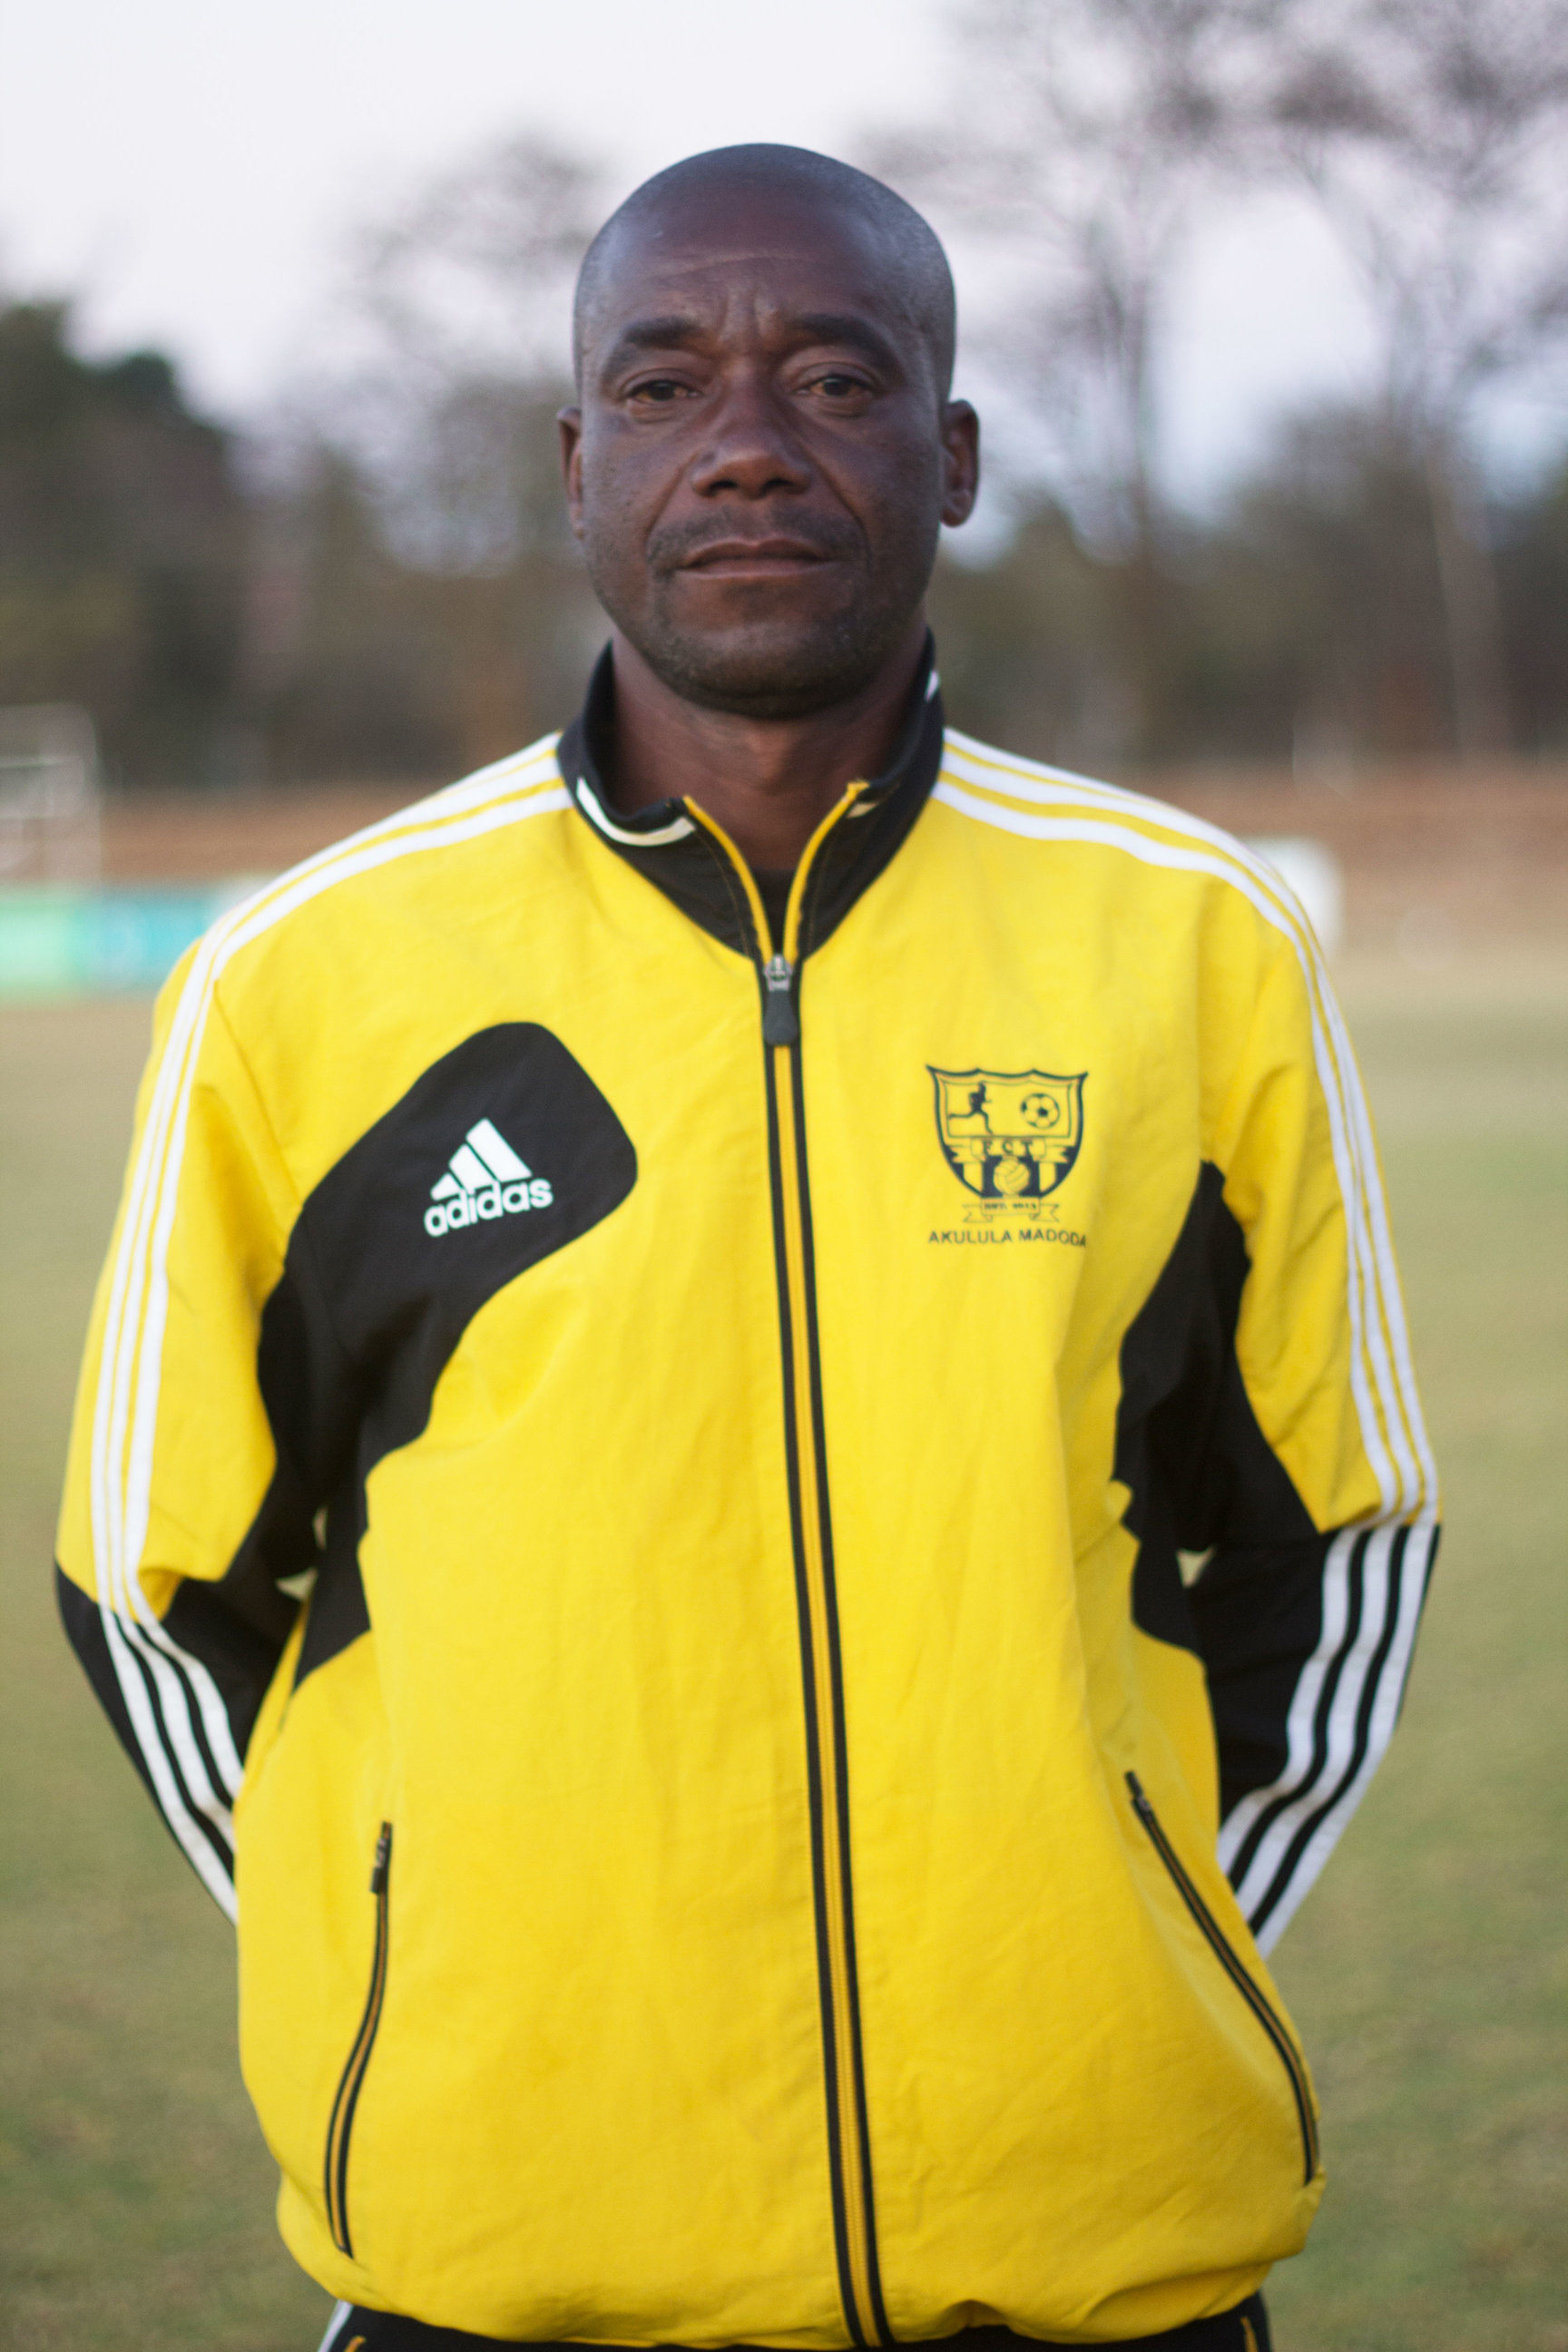 Andrew Musumhere